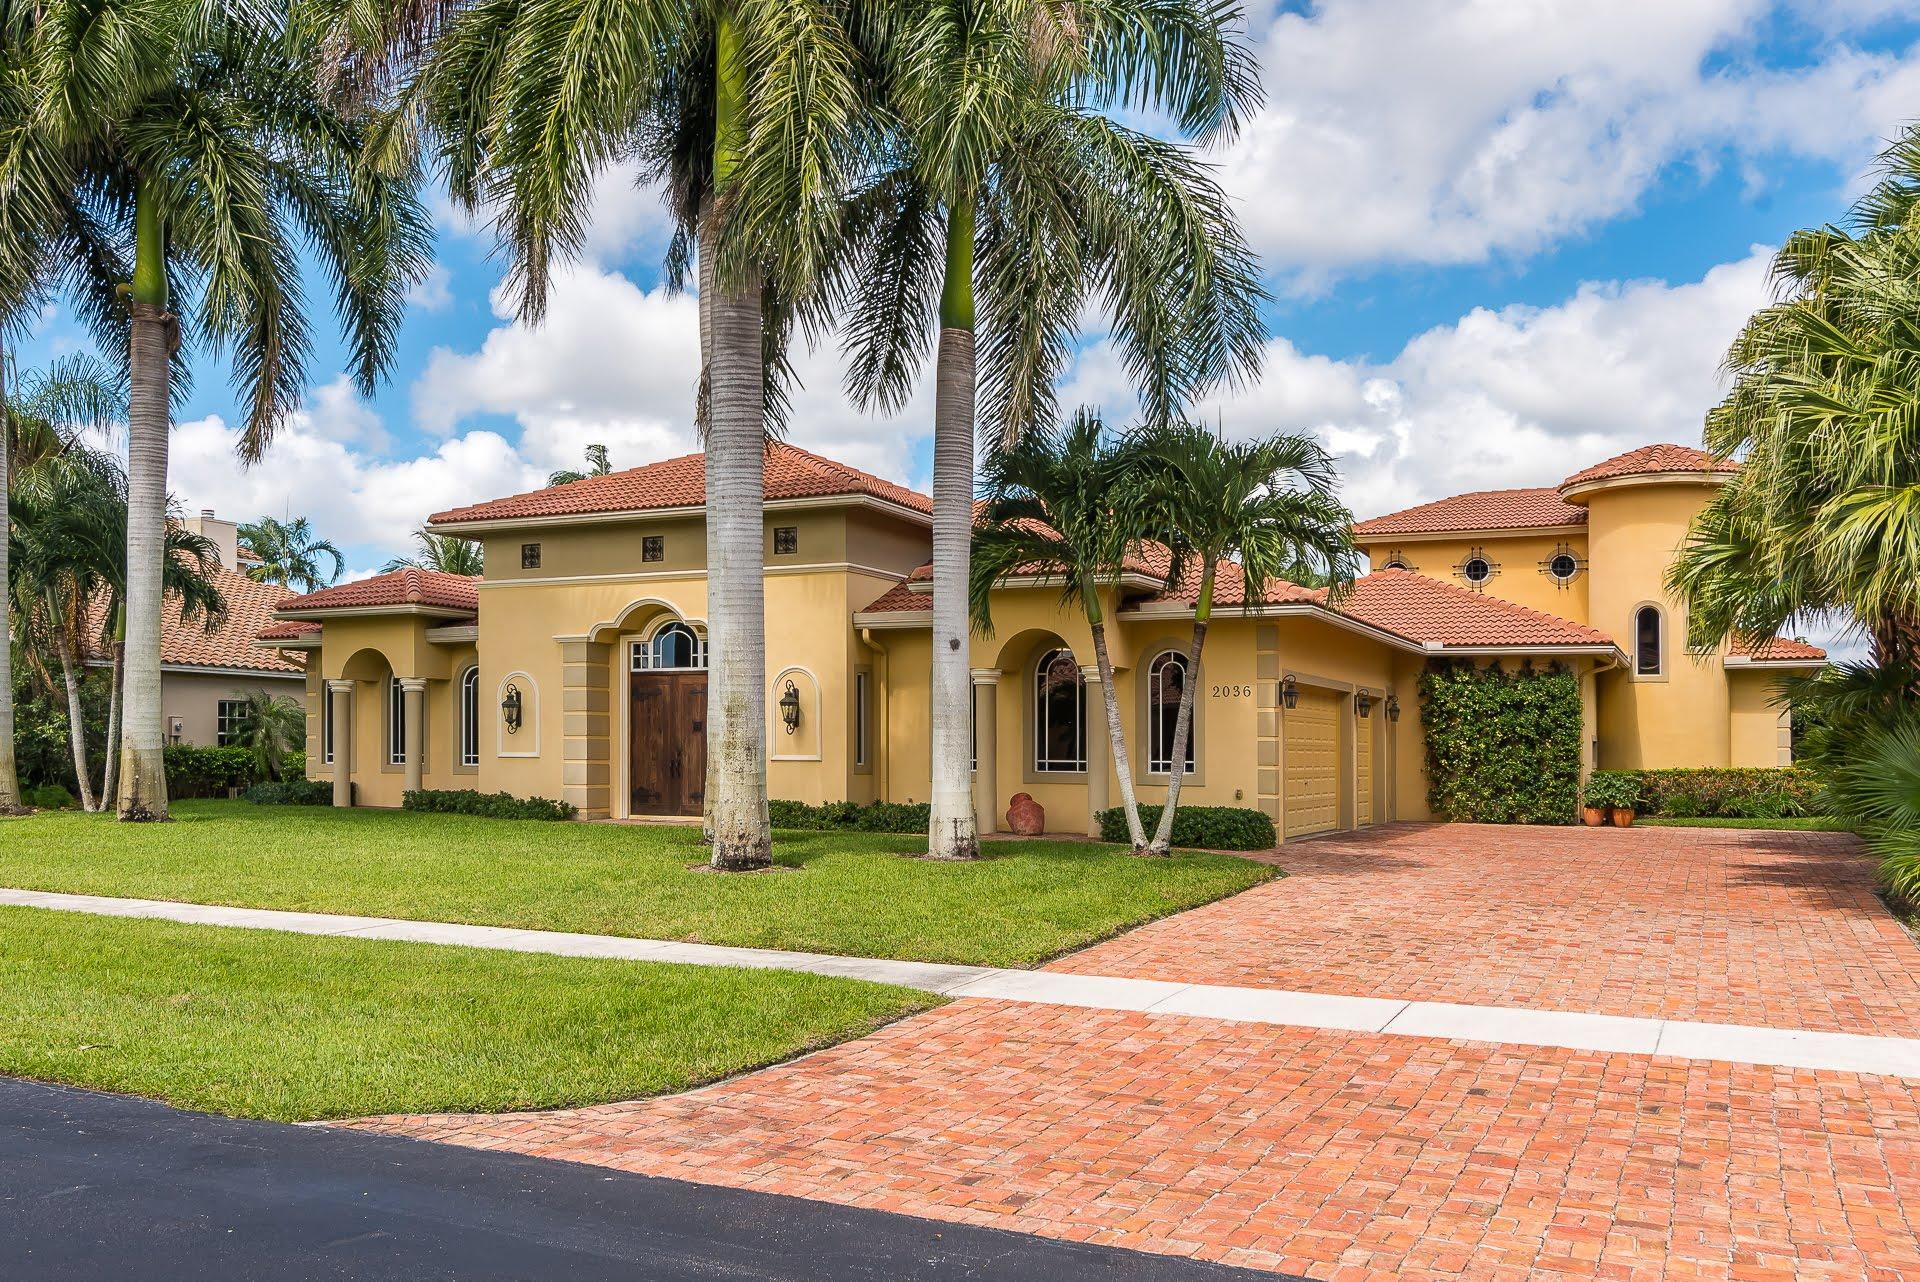 2036 Sunderland Avenue, Wellington, Florida 33414, 4 Bedrooms Bedrooms, ,4.1 BathroomsBathrooms,Single Family,For Sale,POLO WEST / GREENVIEW COVE,Sunderland,1,RX-10495750